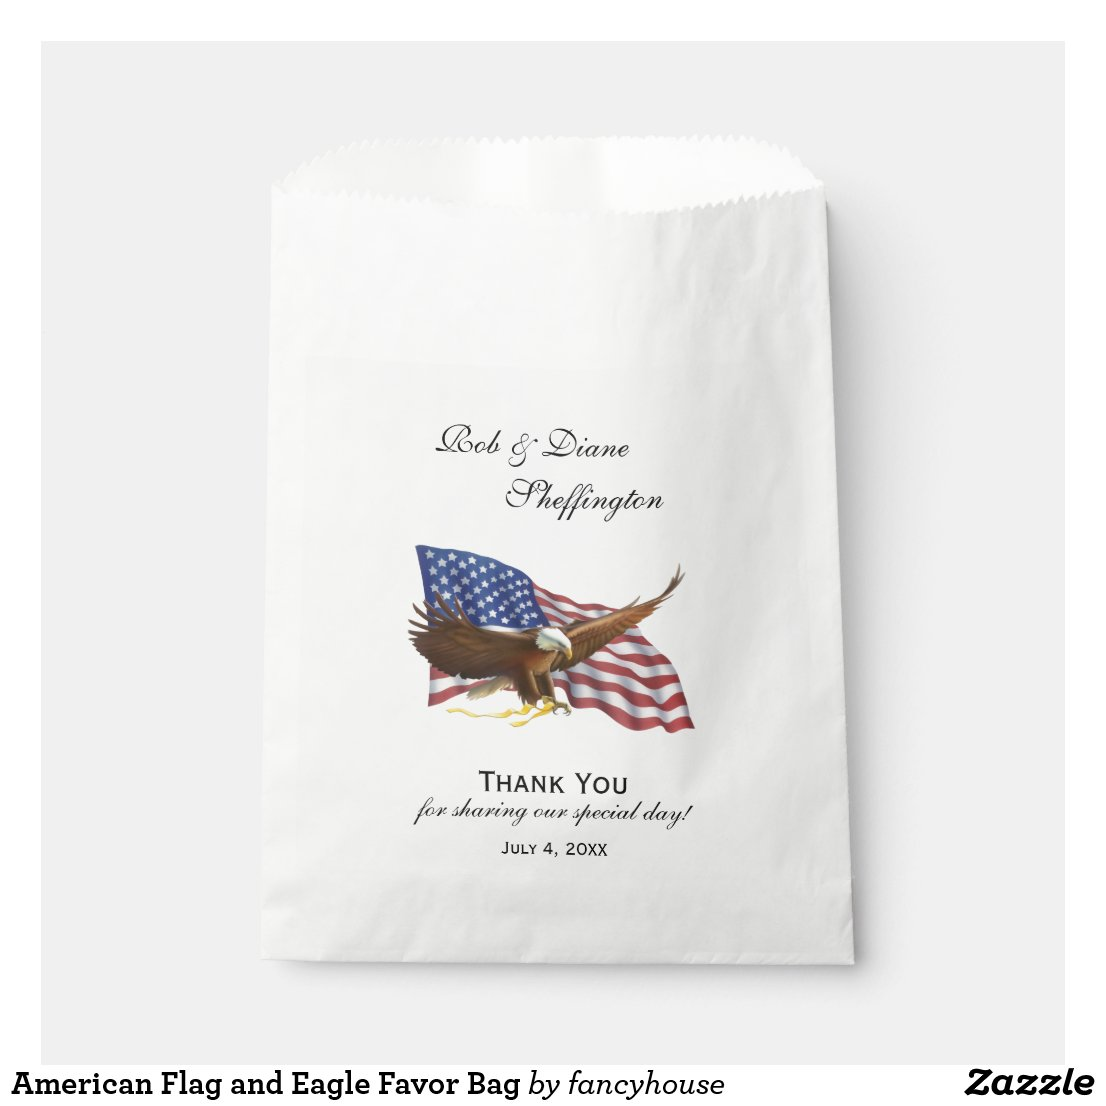 American Flag and Eagle Favor Bag